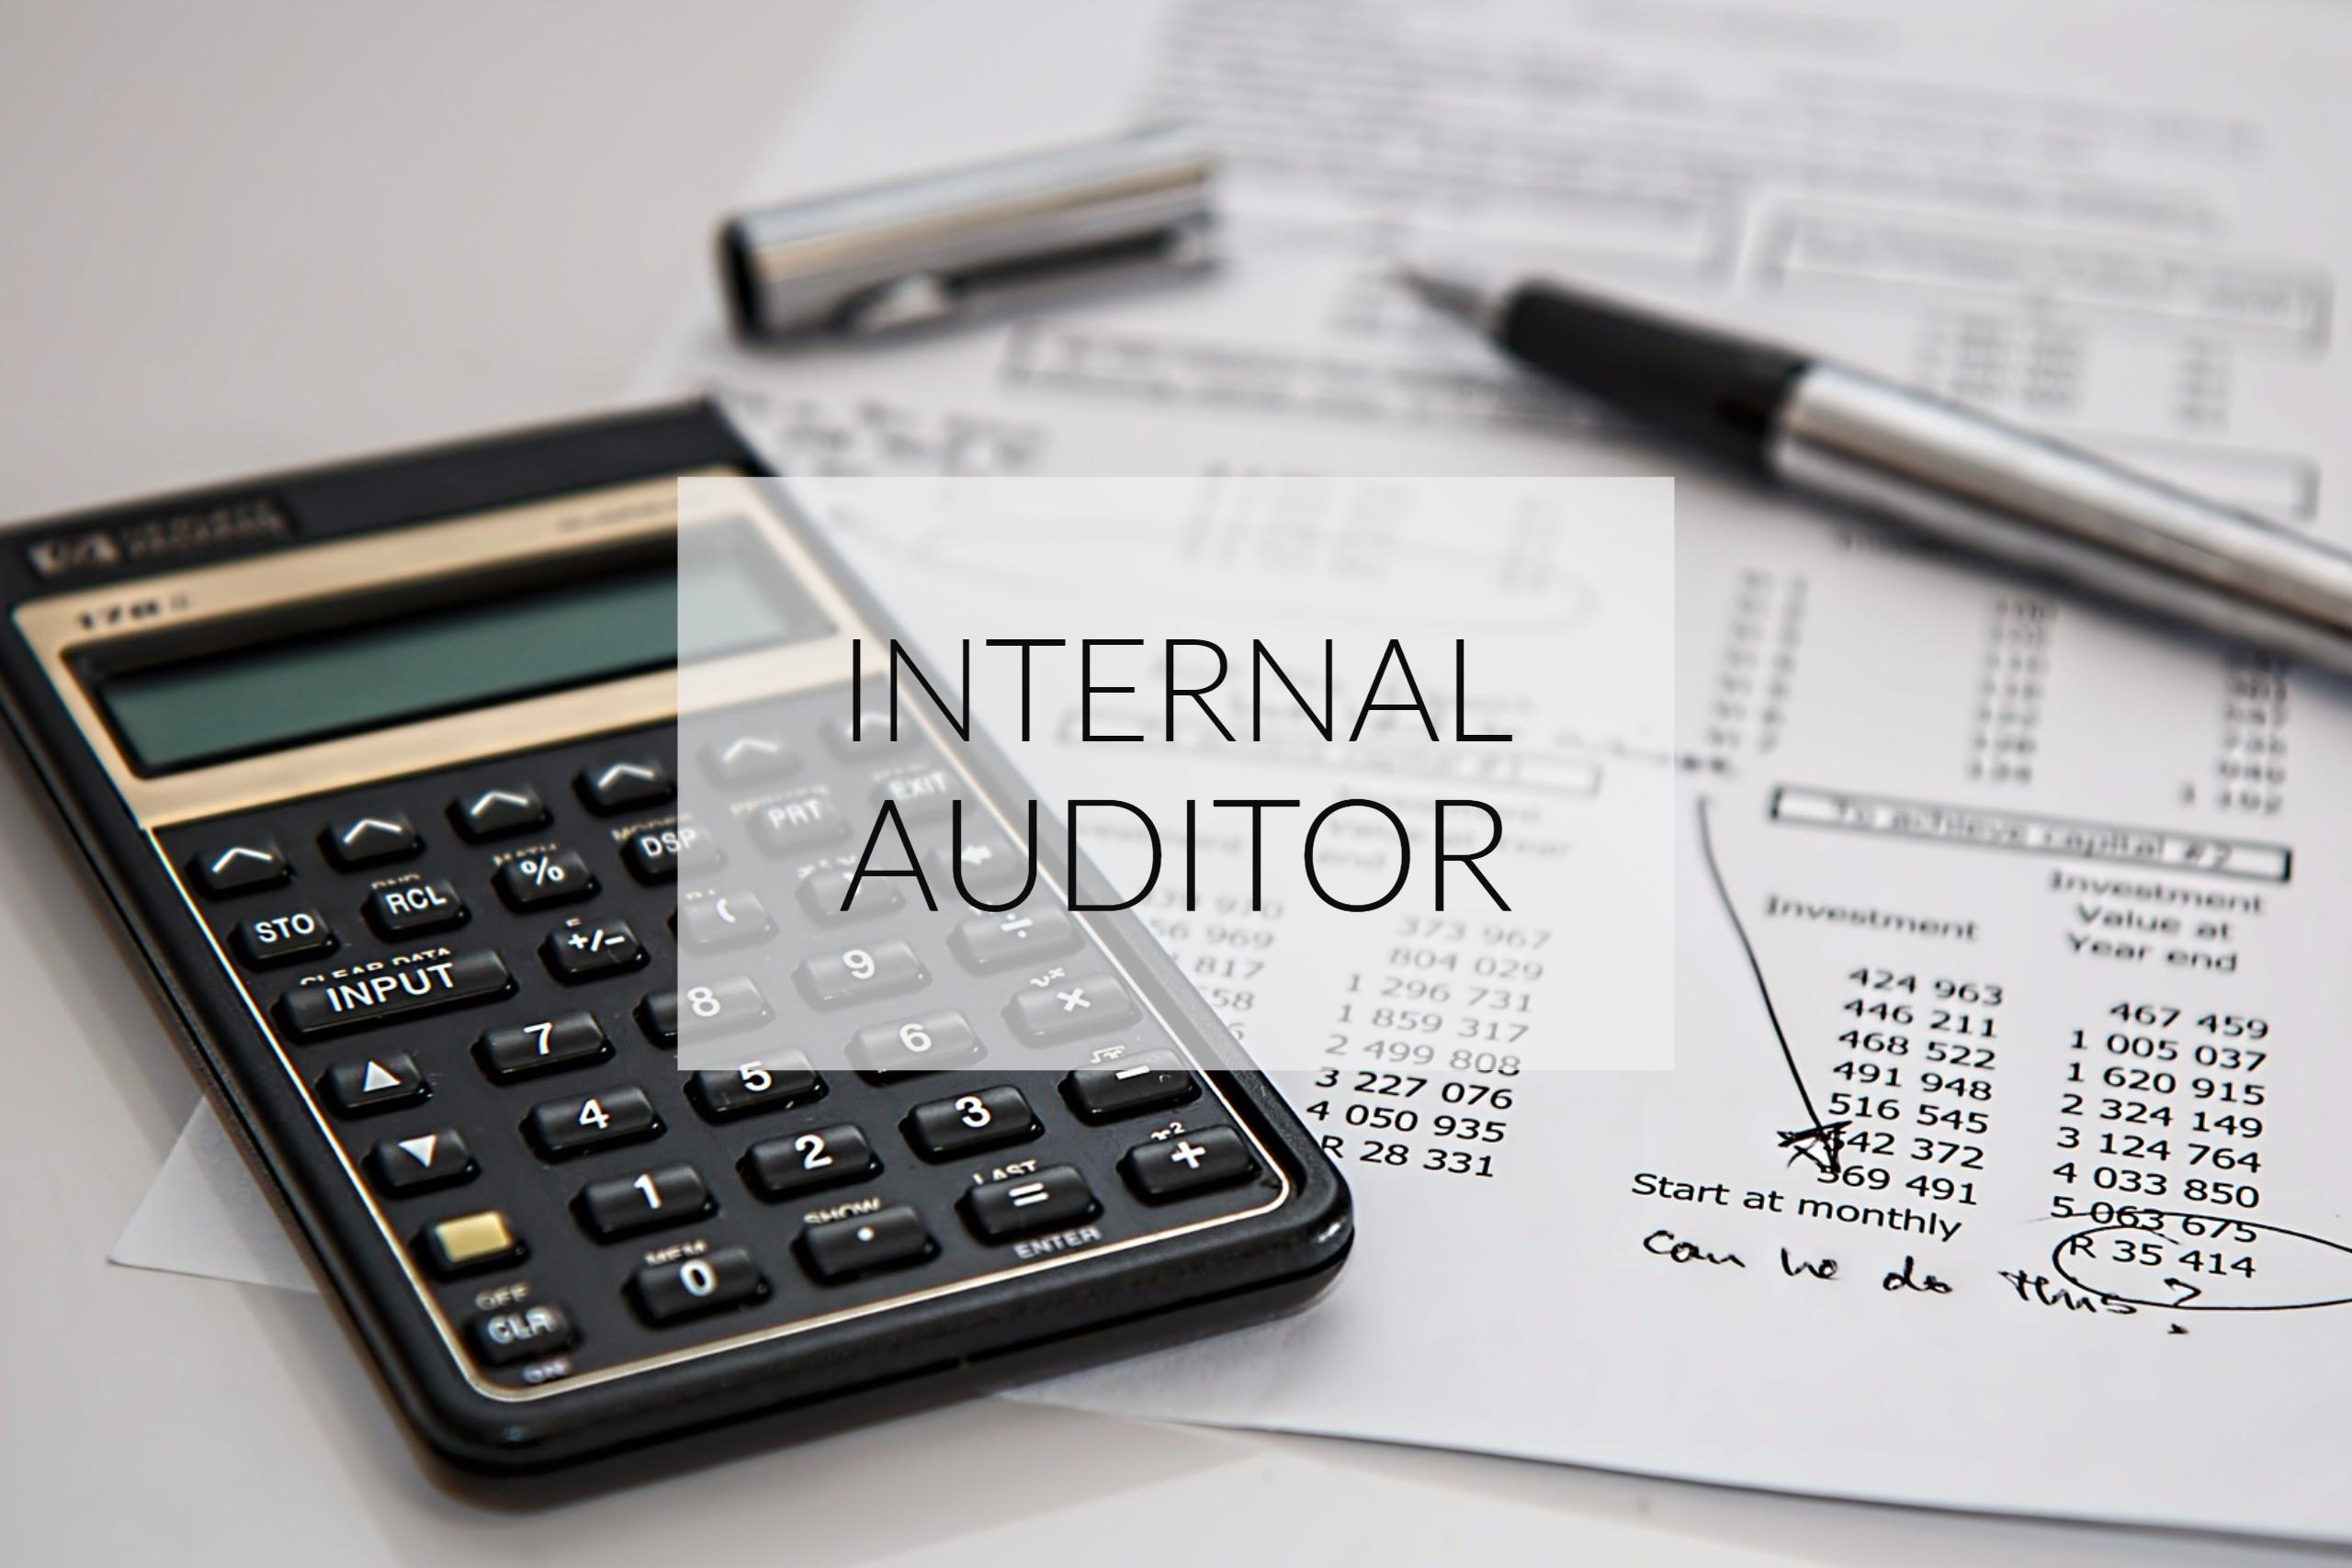 internal audit in shipping companies Internal audit, risk & compliance kpmg risk consulting professionals combine industry knowledge, experience, leading methodologies, and a performance focus to help enable internal audit, risk management, compliance, and finance functions.